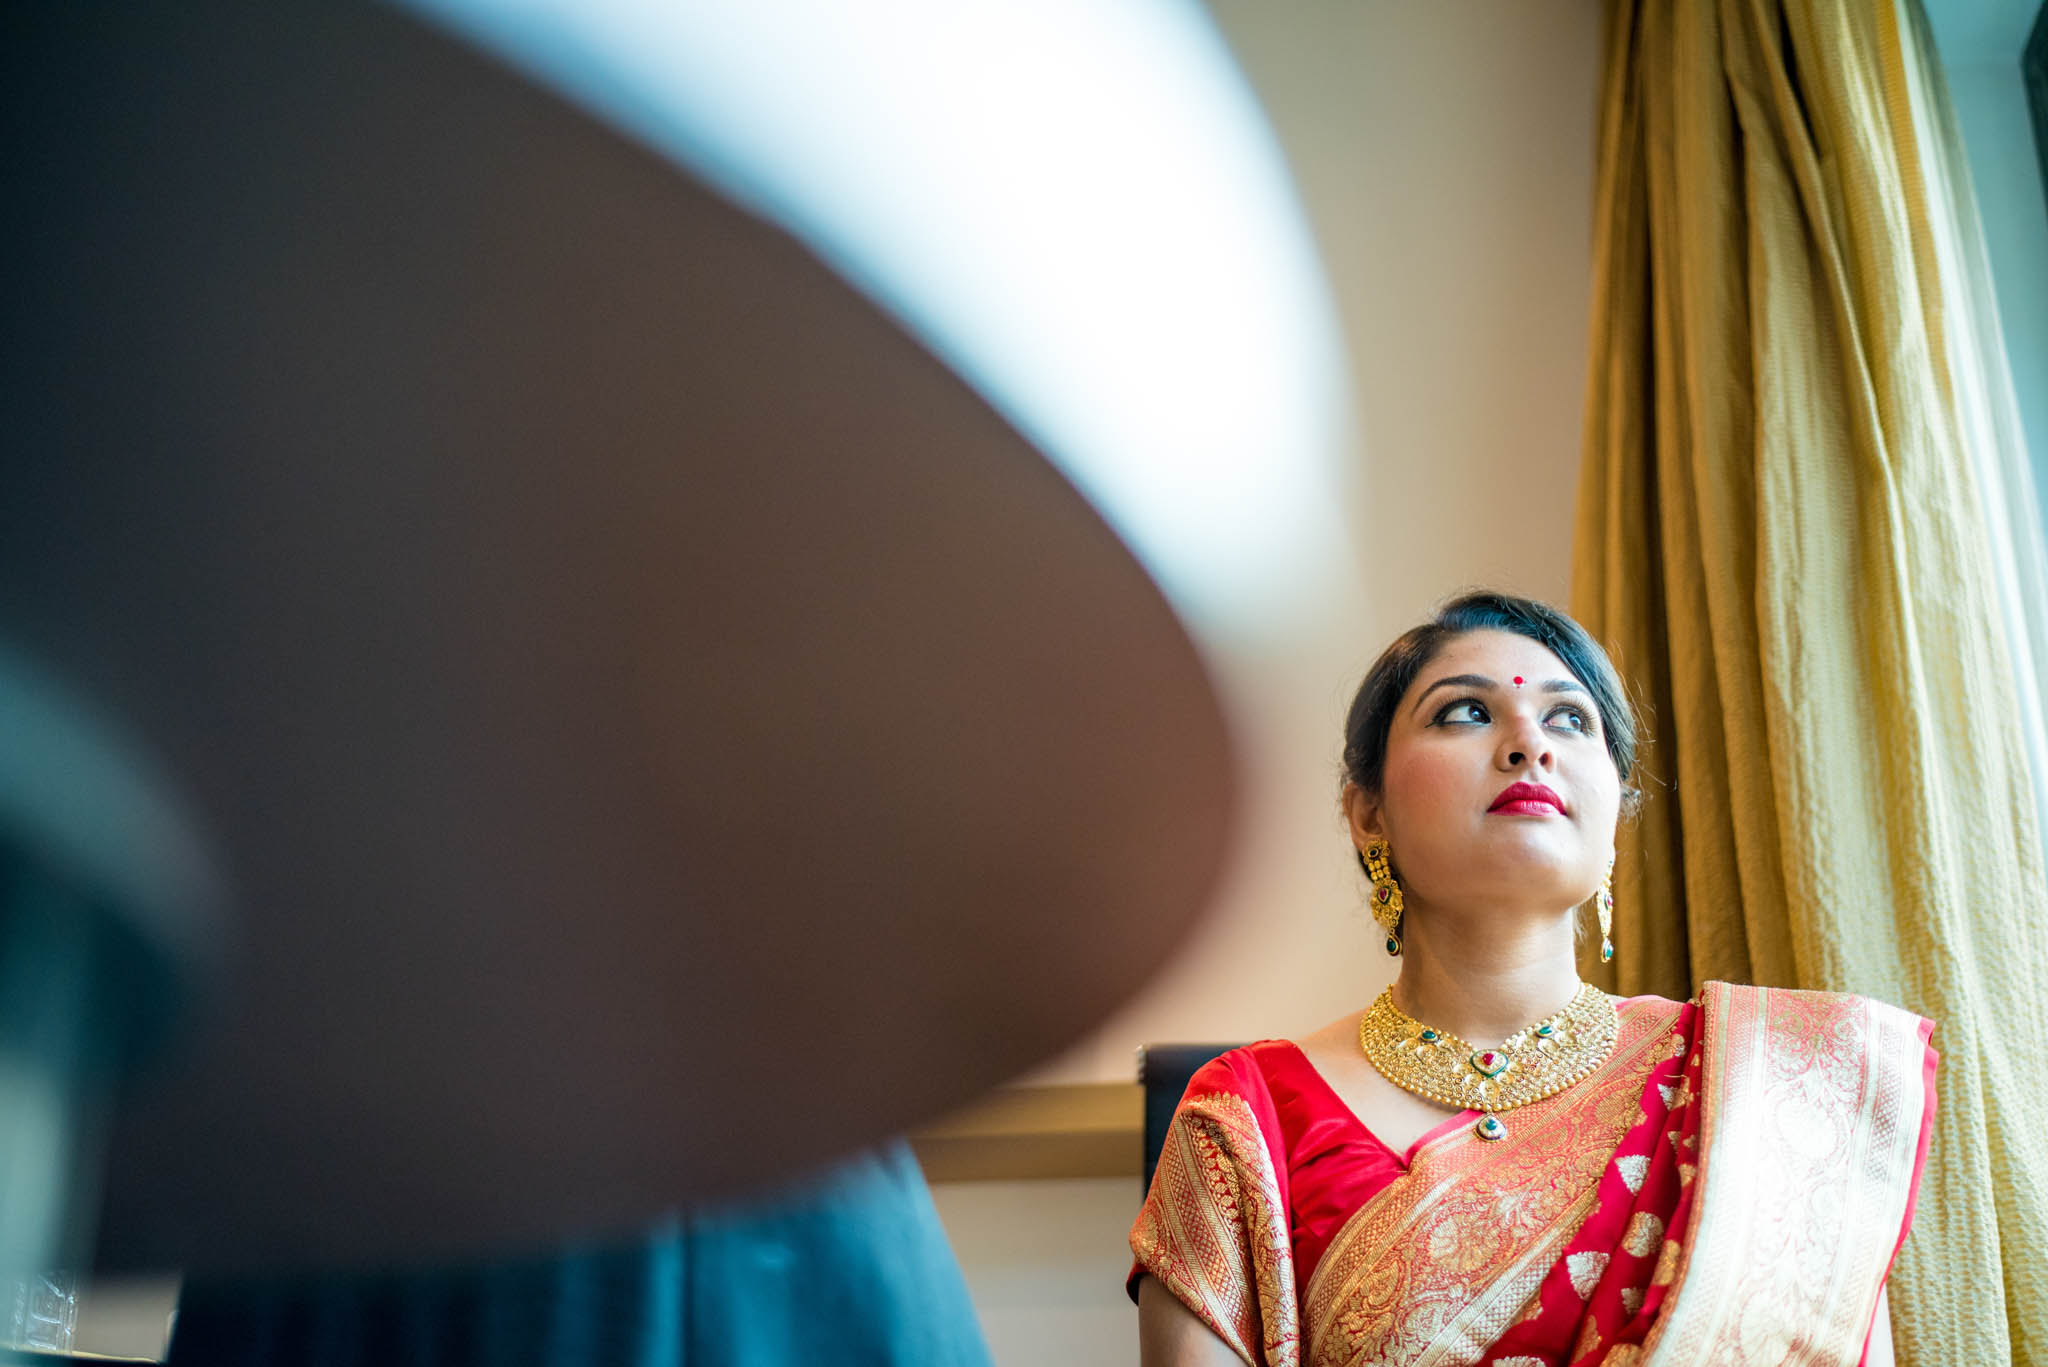 Makeup-room-bride-lehenga-whatknot-photography-35